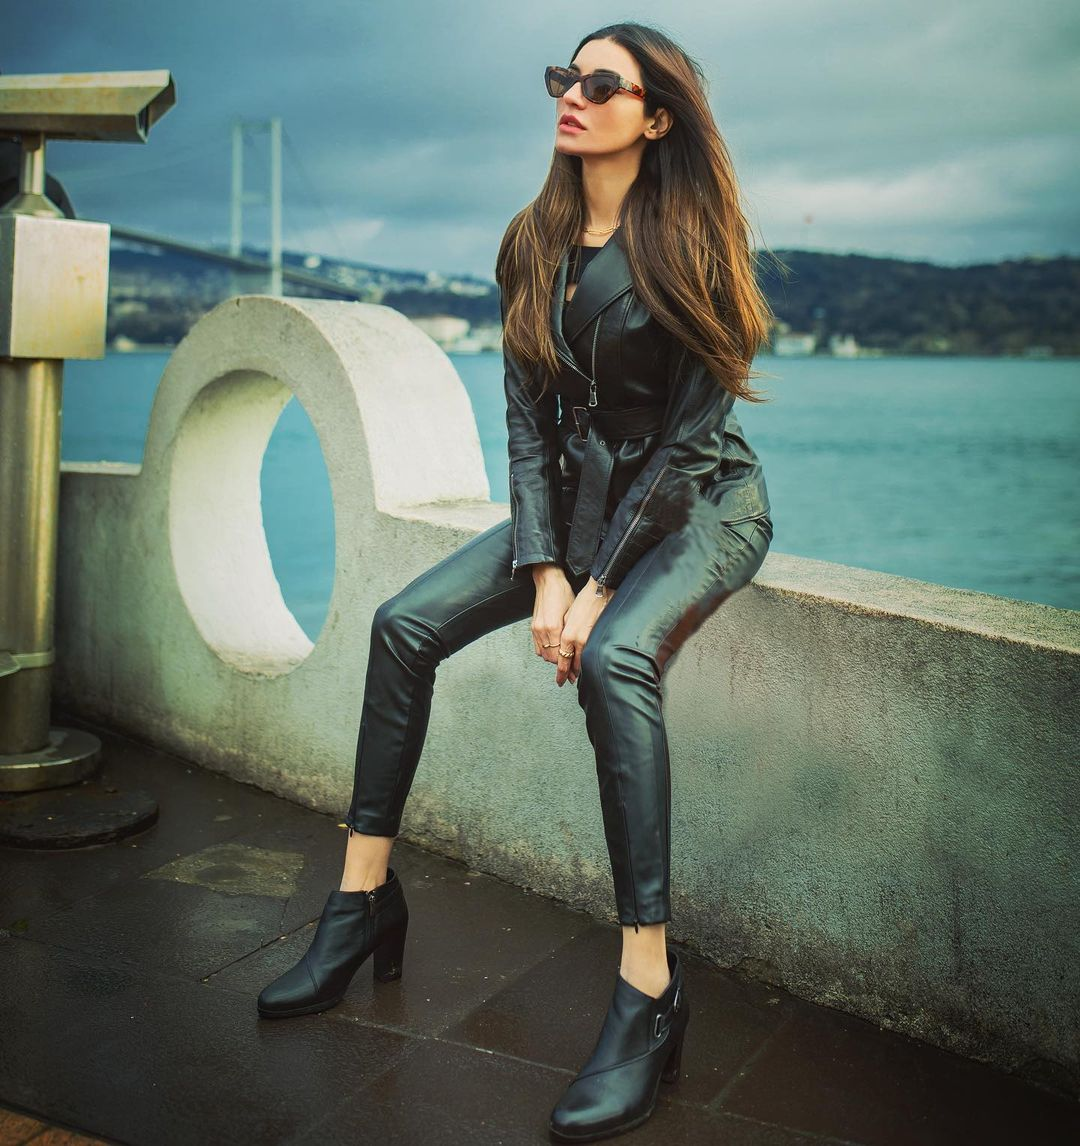 Gorgeous Actress Sadia Khan in Istanbul Turkey - Beautiful Pictures